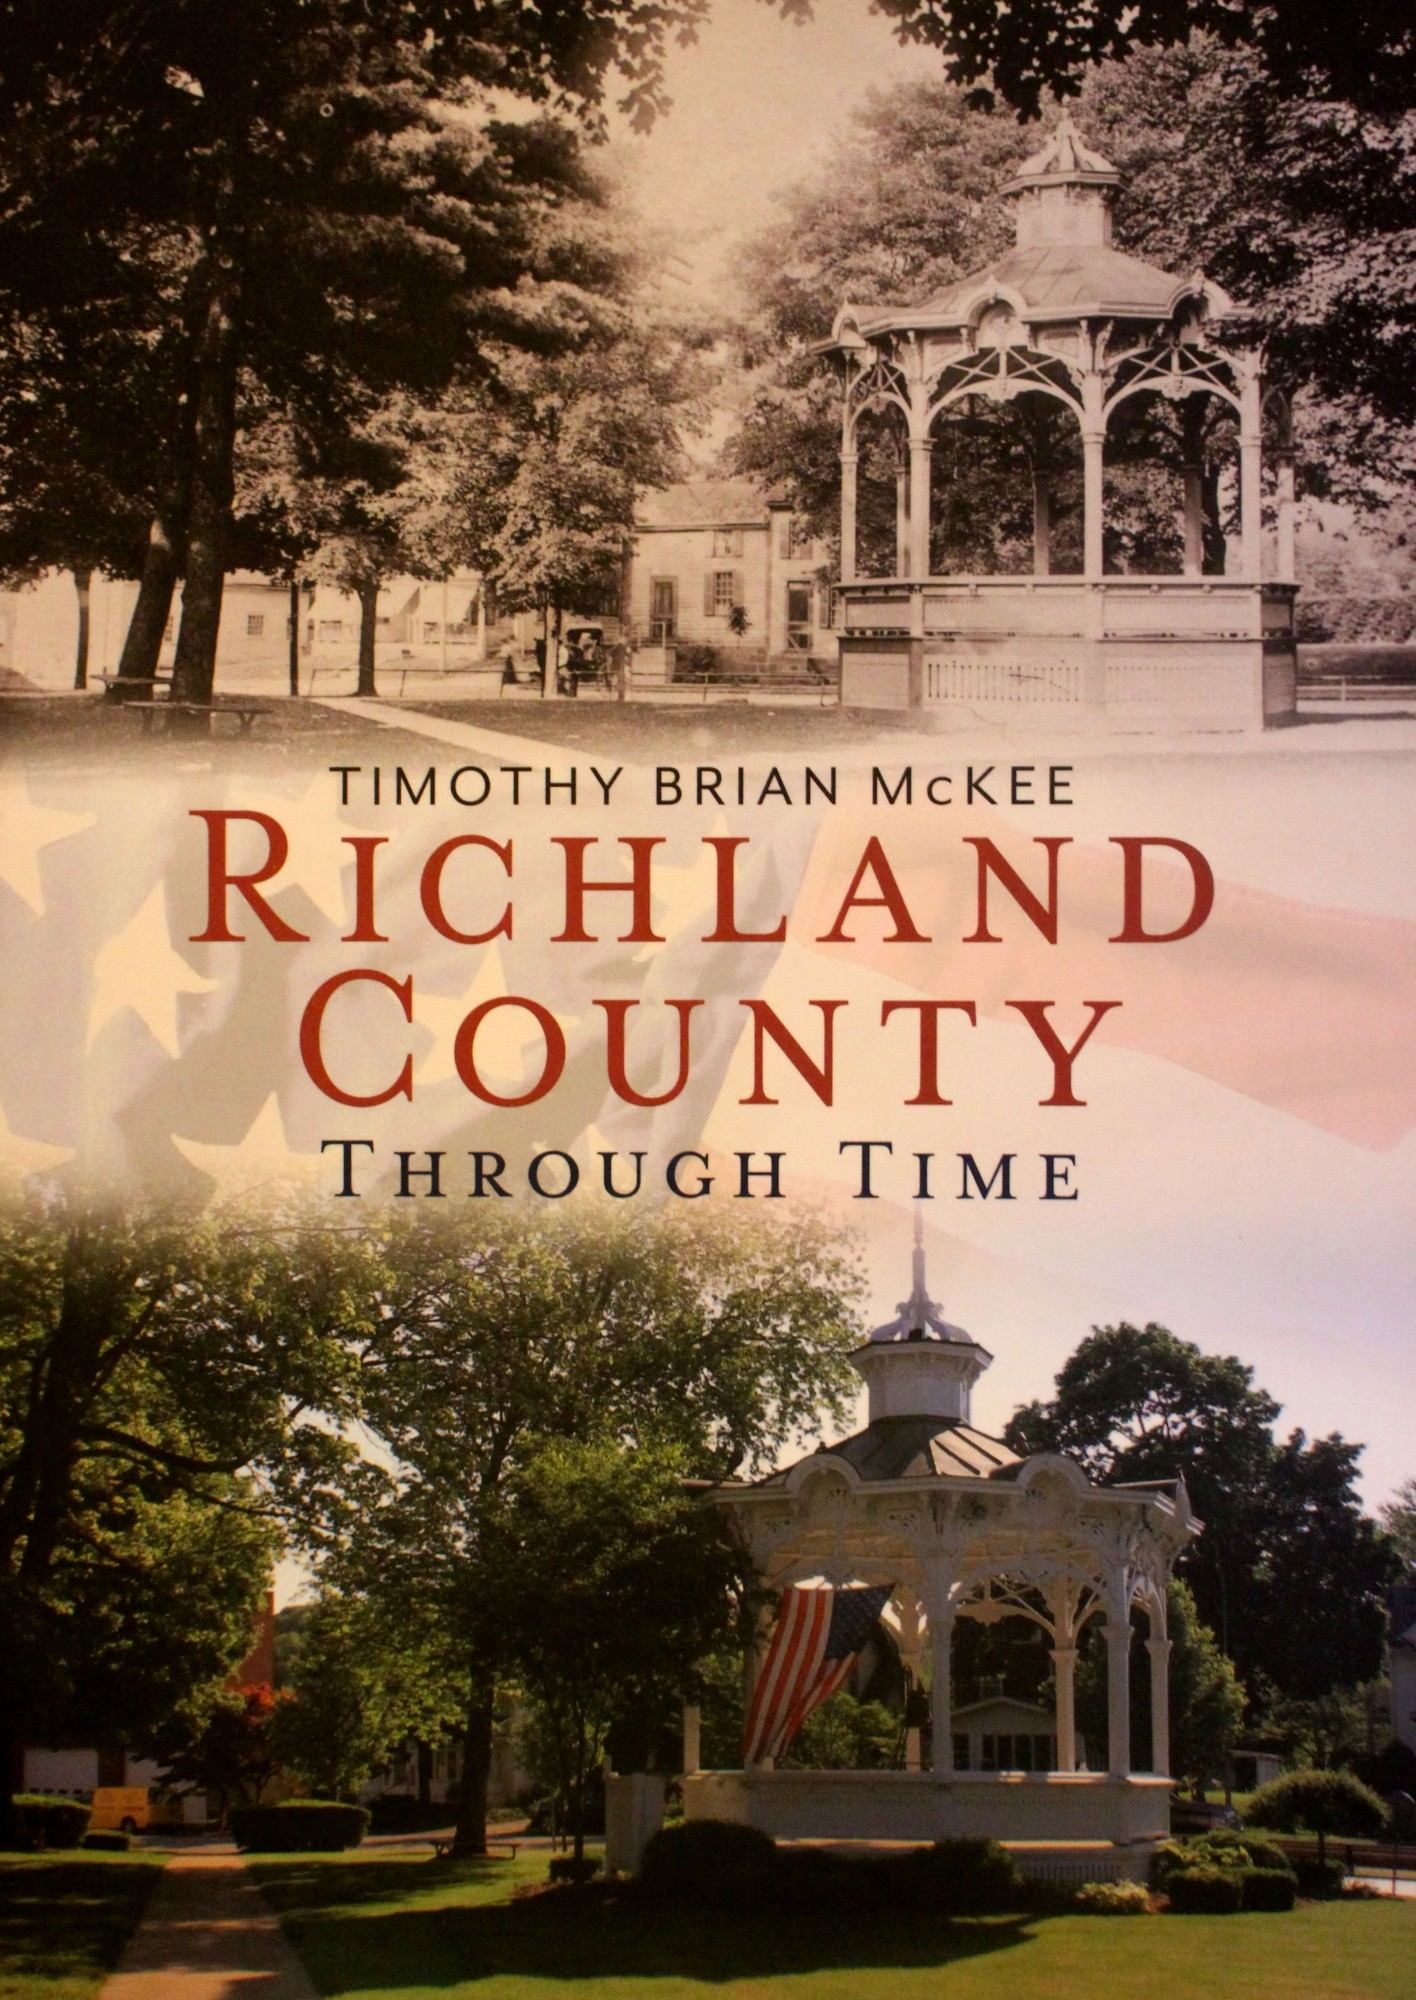 Books- Richland County Through Time